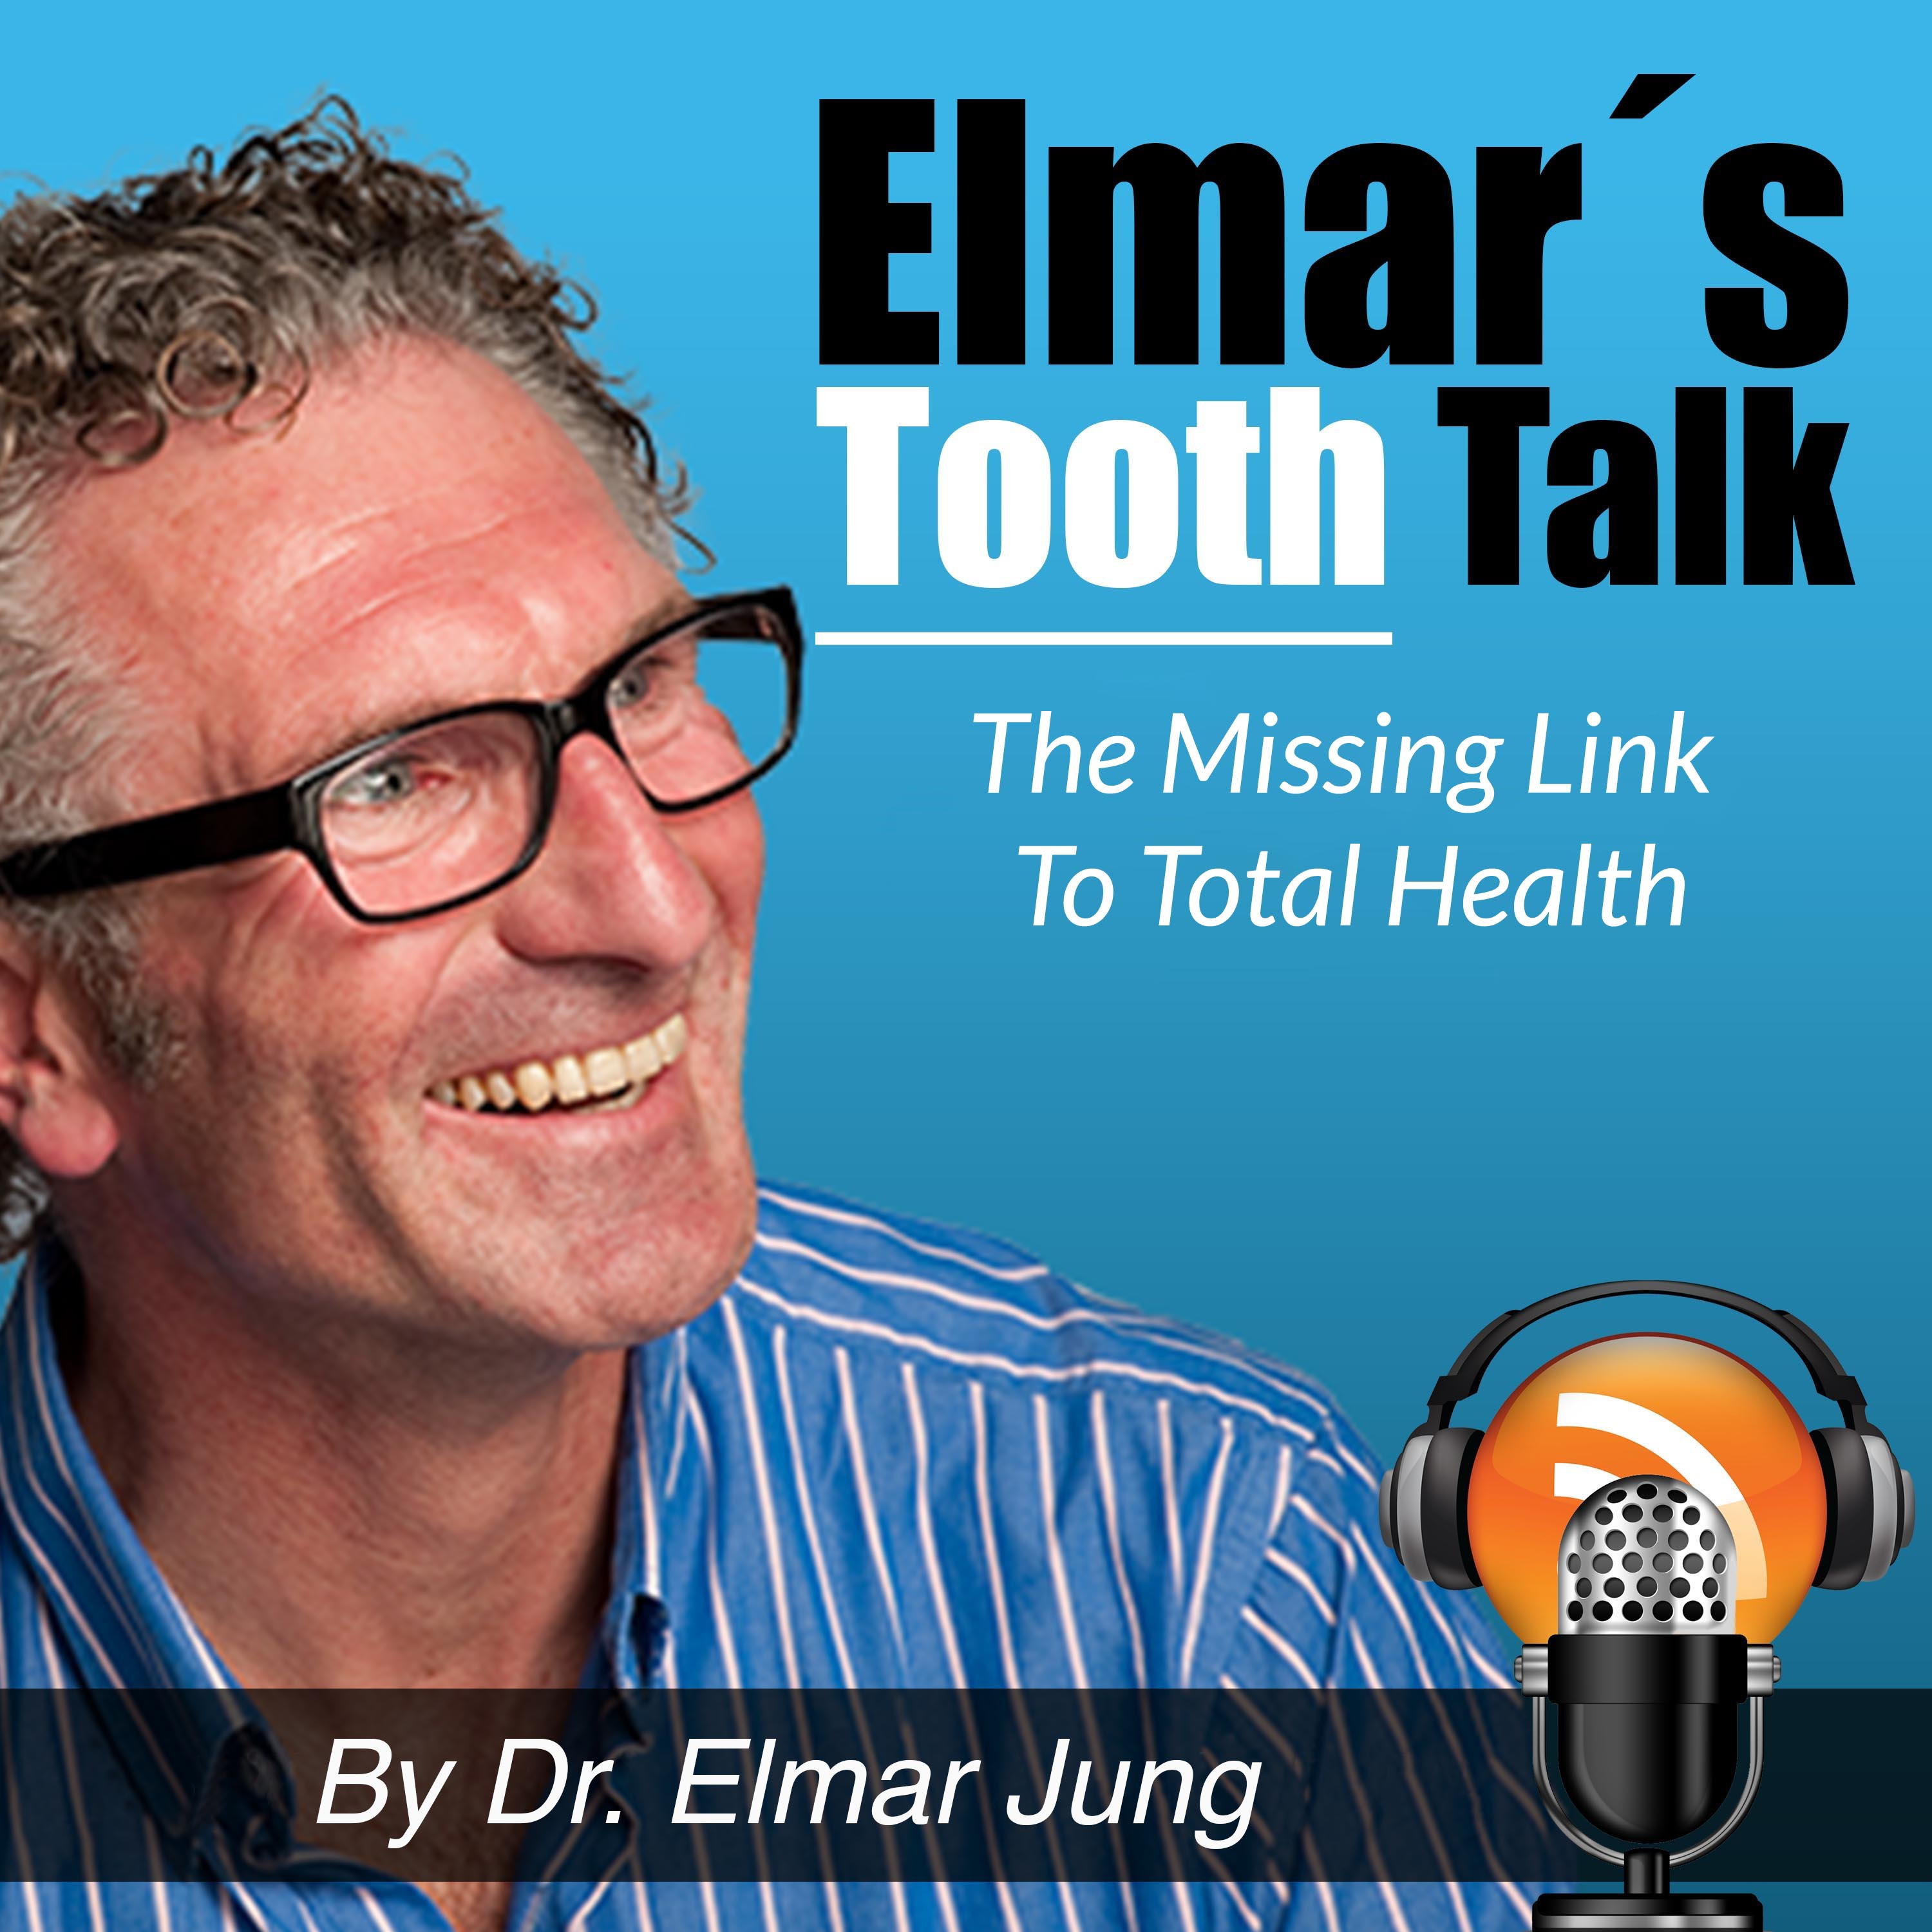 Elmar's Tooth Talk – The Missing Link to Total Health